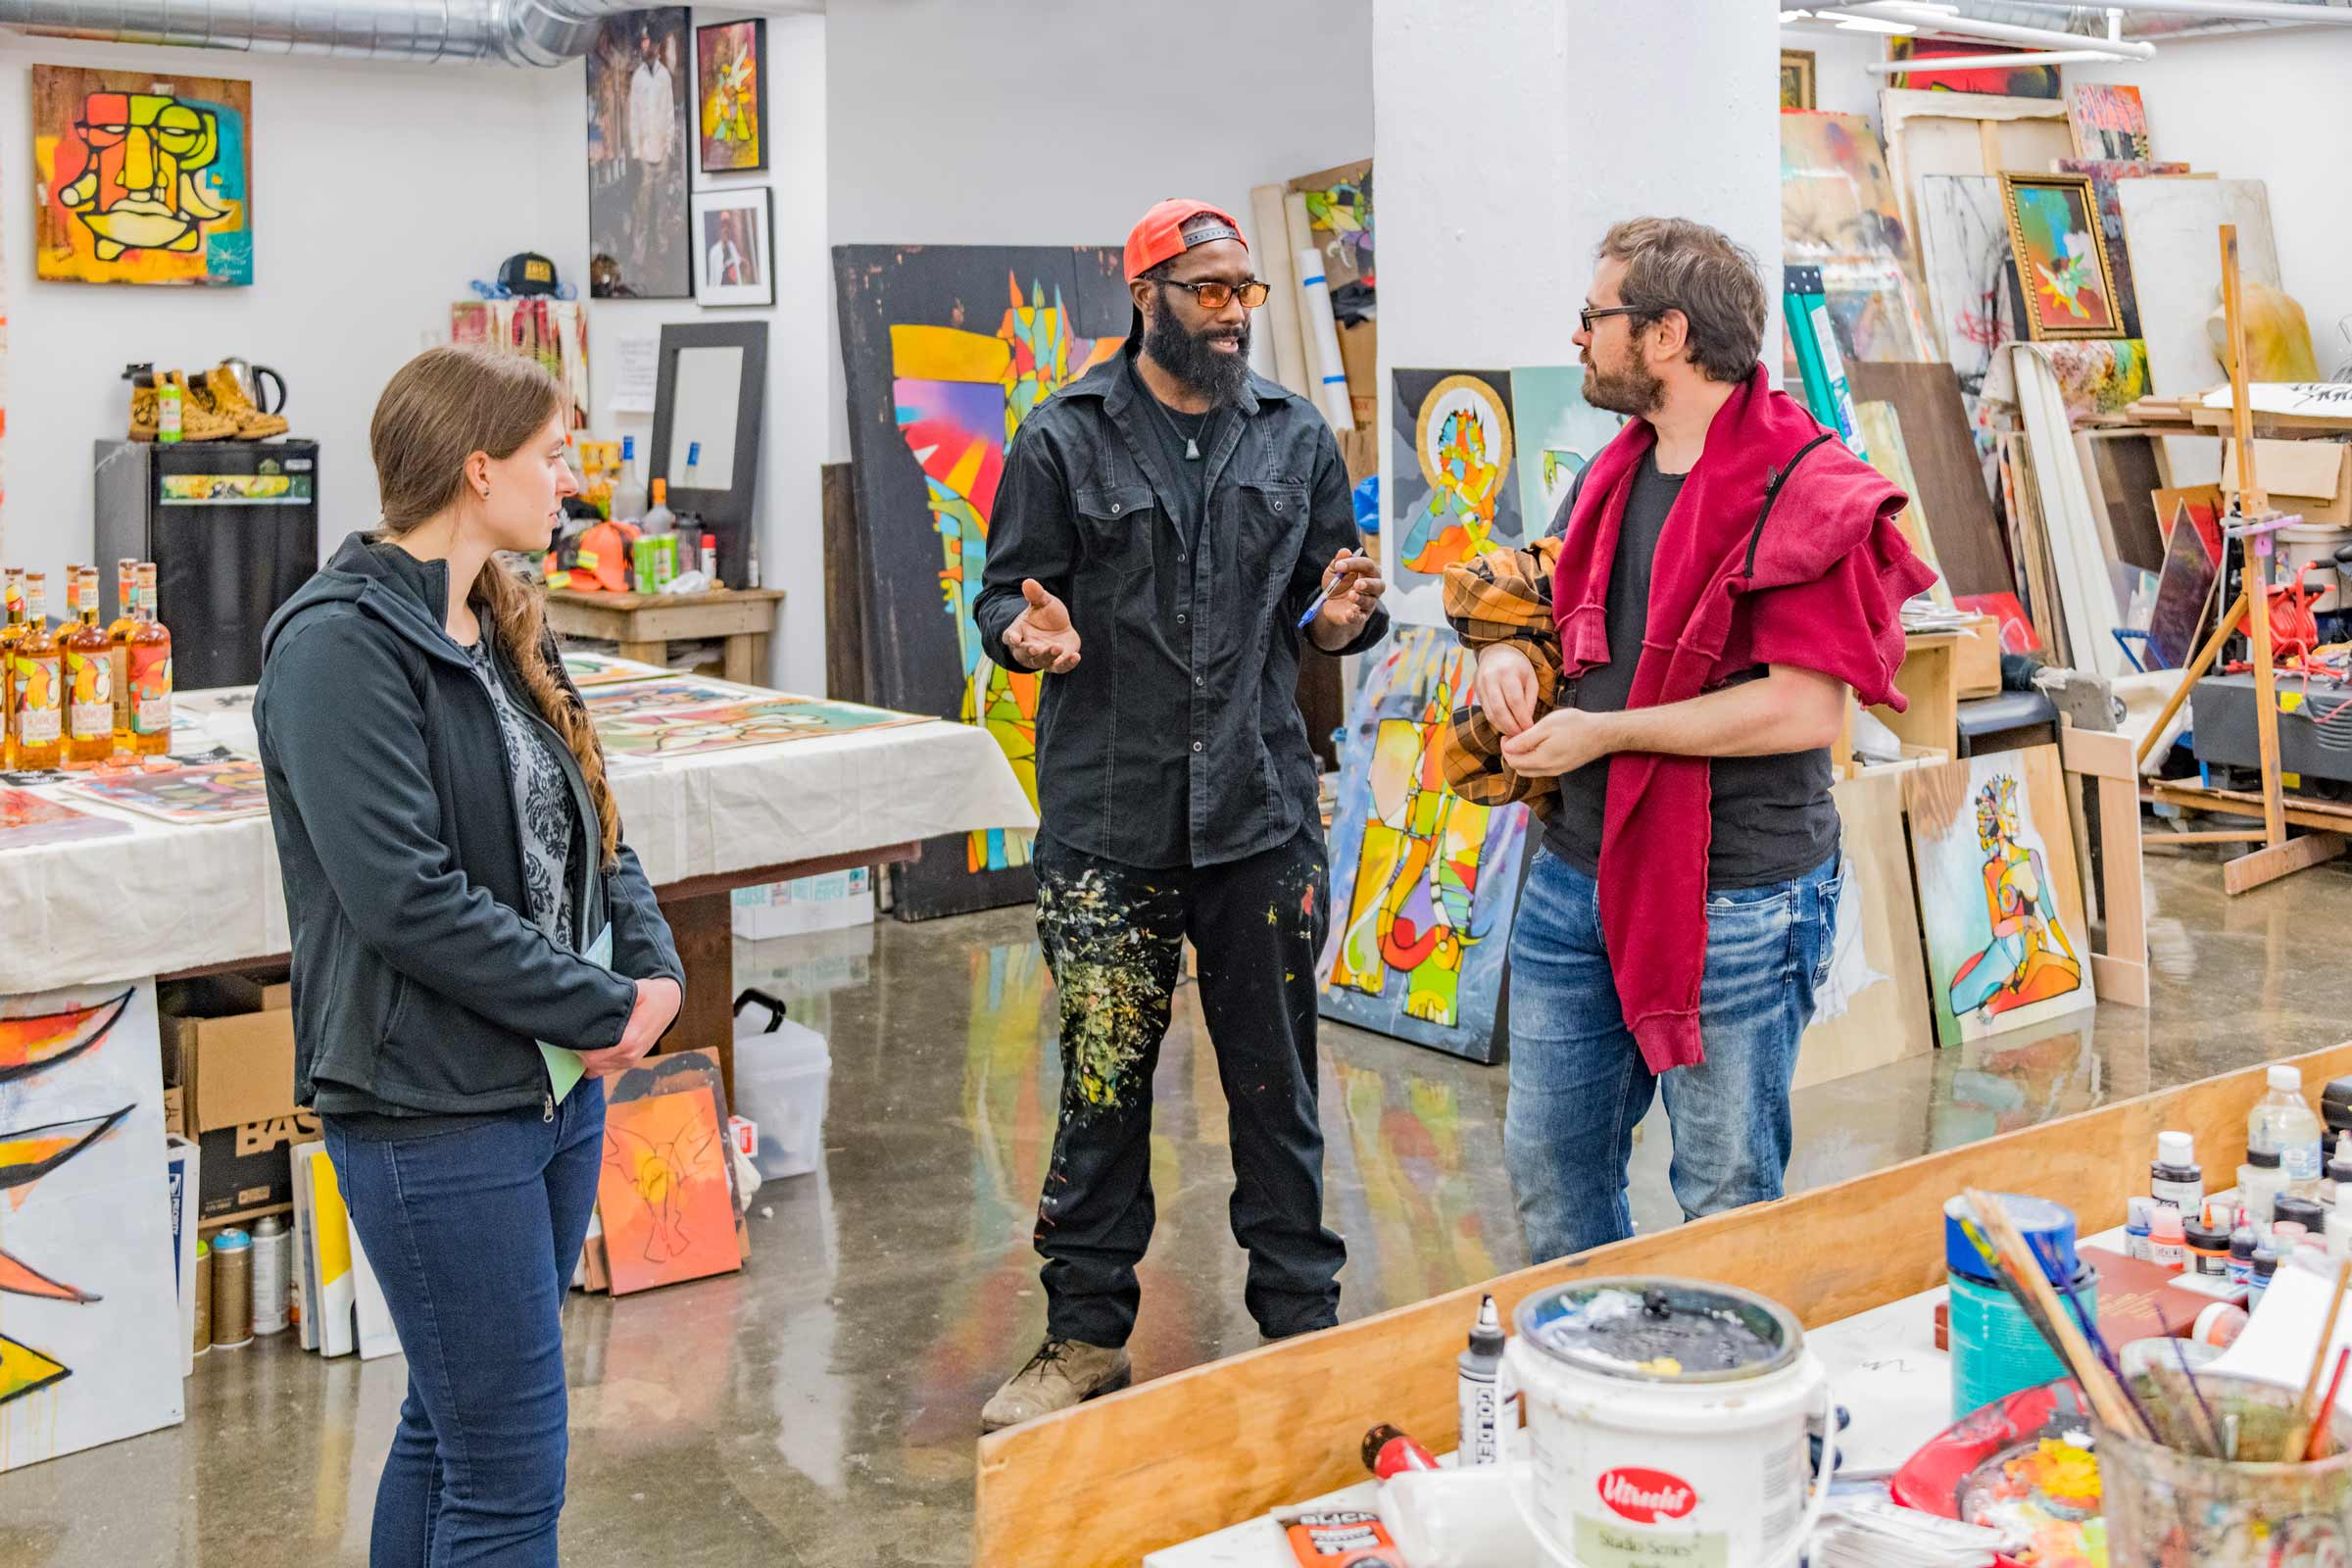 Artists Conversing with Viewers